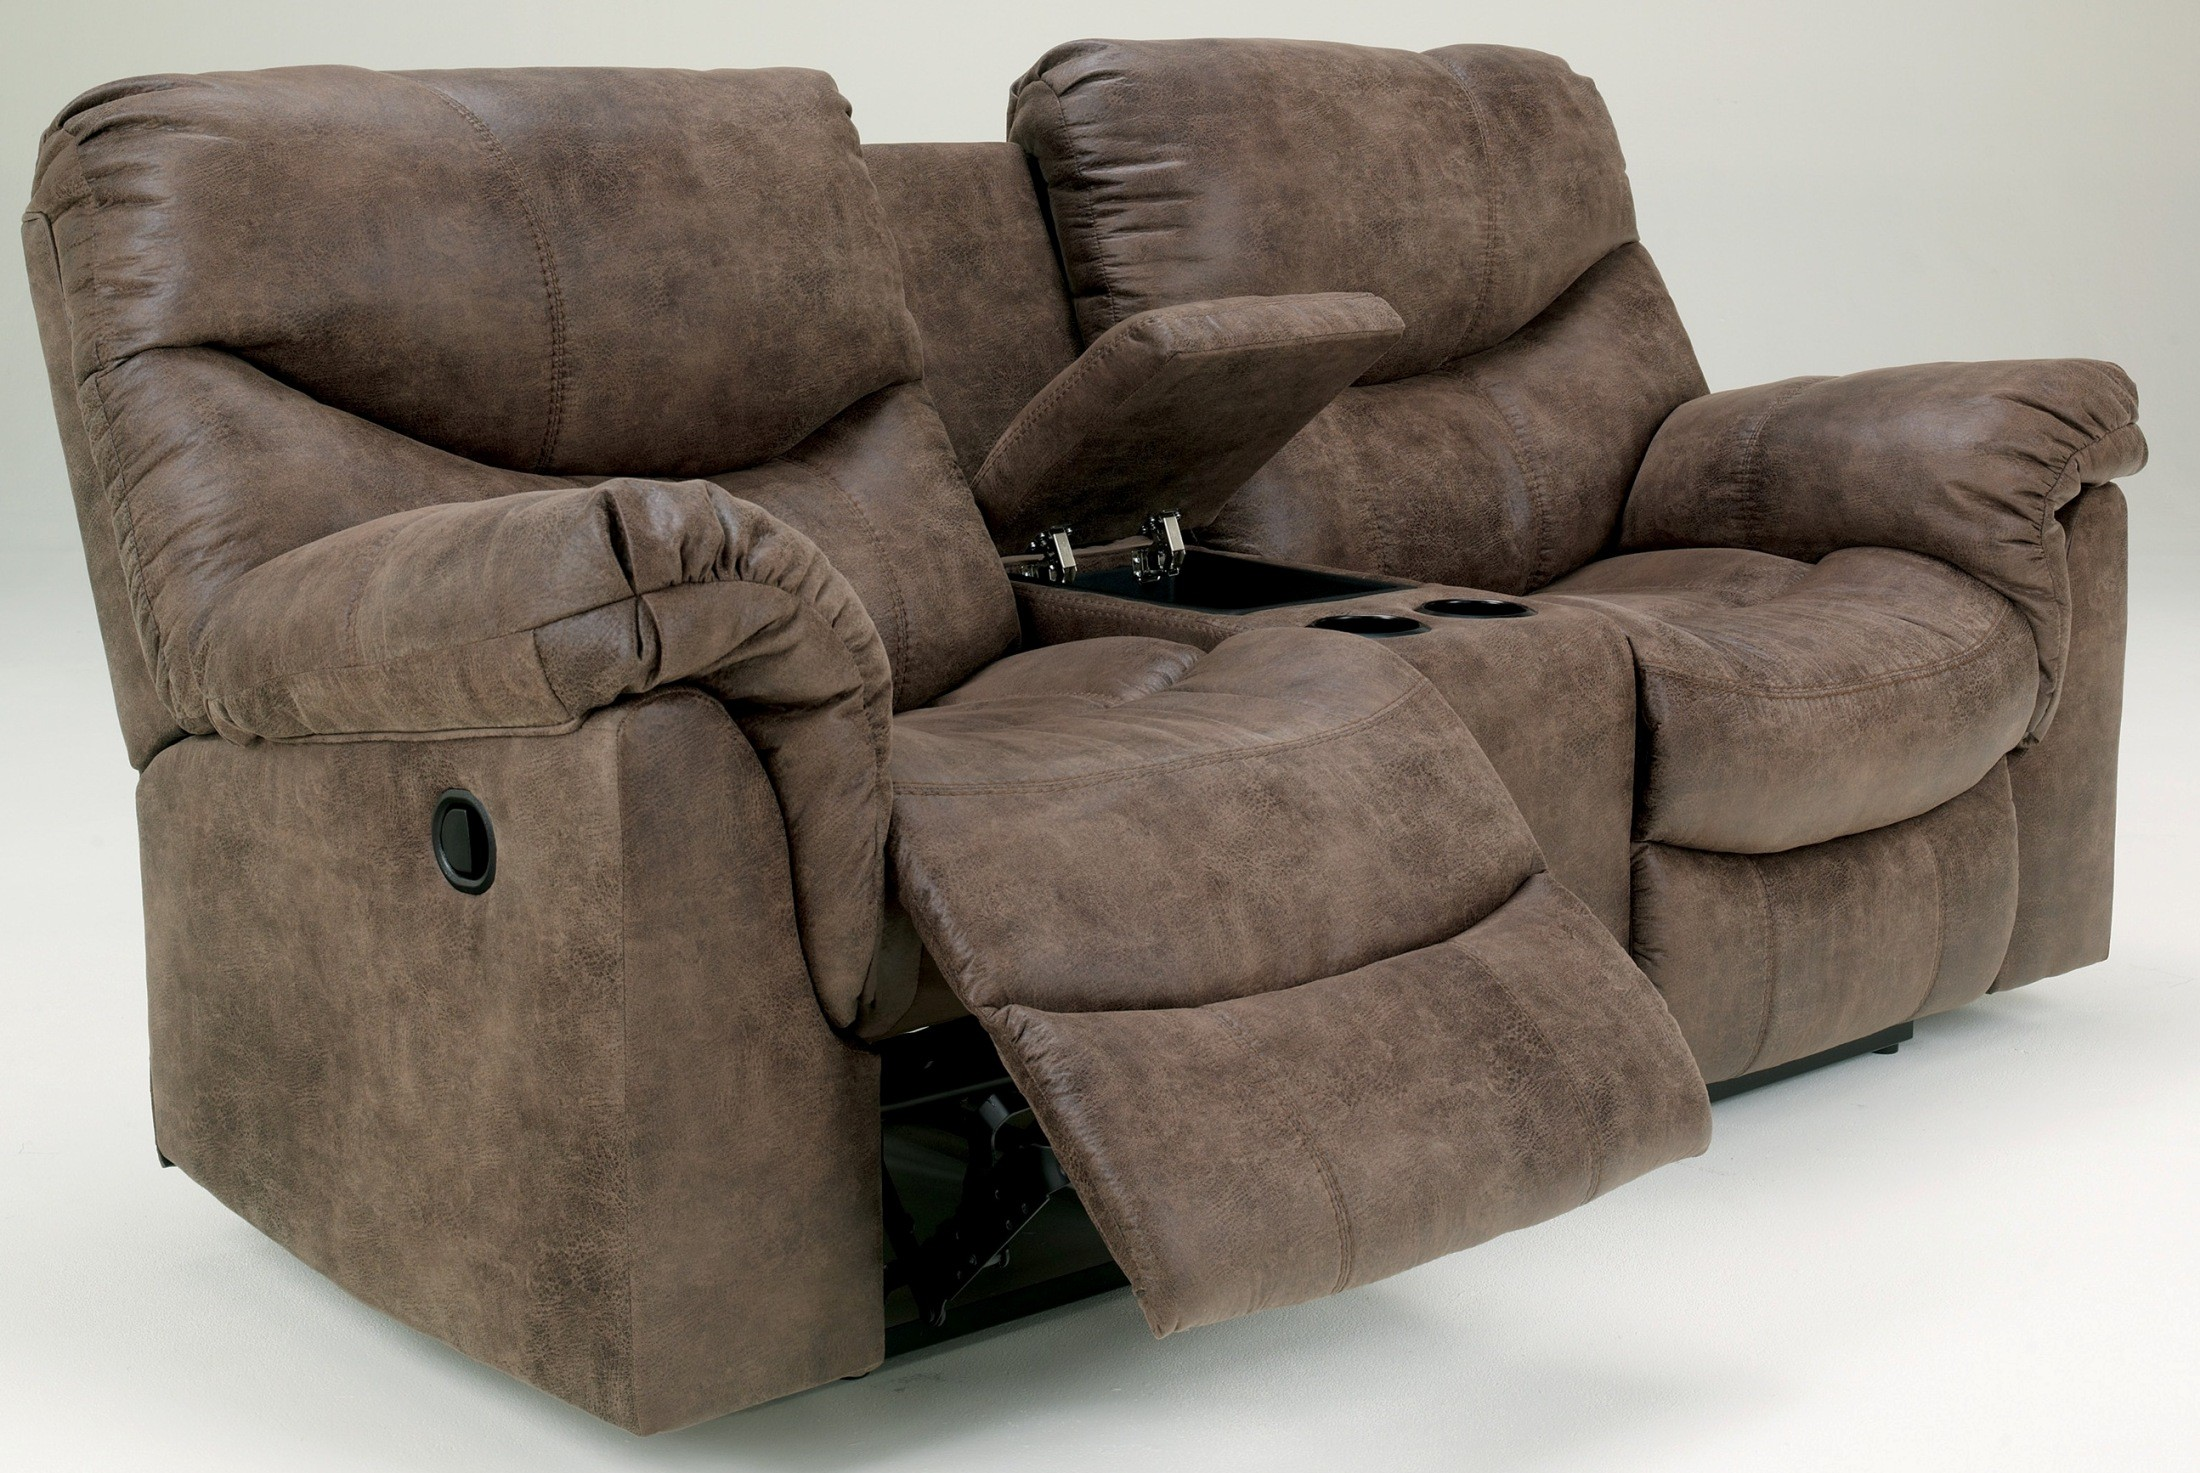 Alzena double power reclining loveseat with console from ashley 7140096 coleman furniture Power loveseat recliner